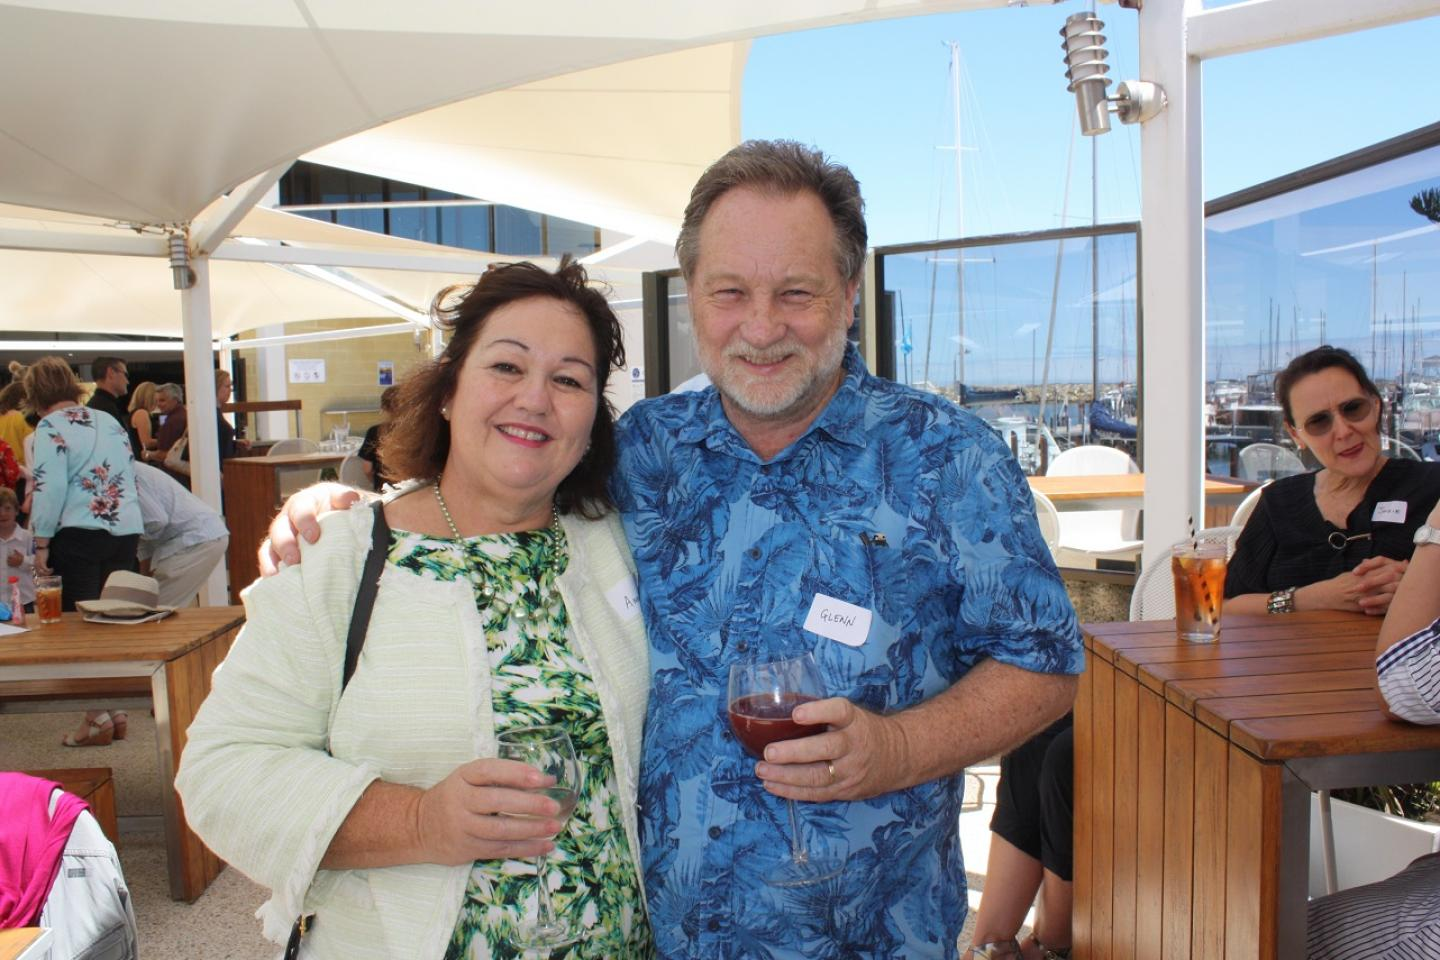 Enjoying the pleasant surrounds of the Fremantle Sailing Club were Ausplow procurement manager Glenn Hubbard with his wife Ann.